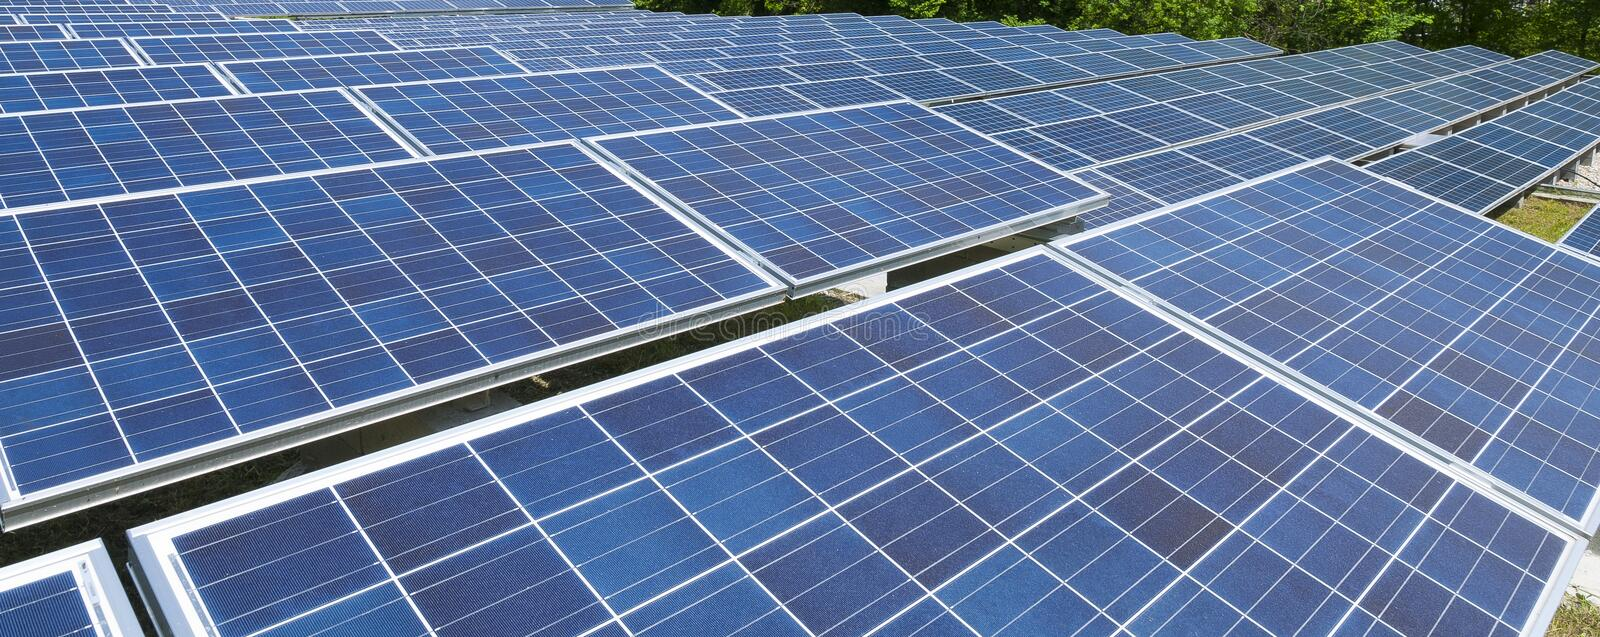 Photovoltaic System royalty free stock photo